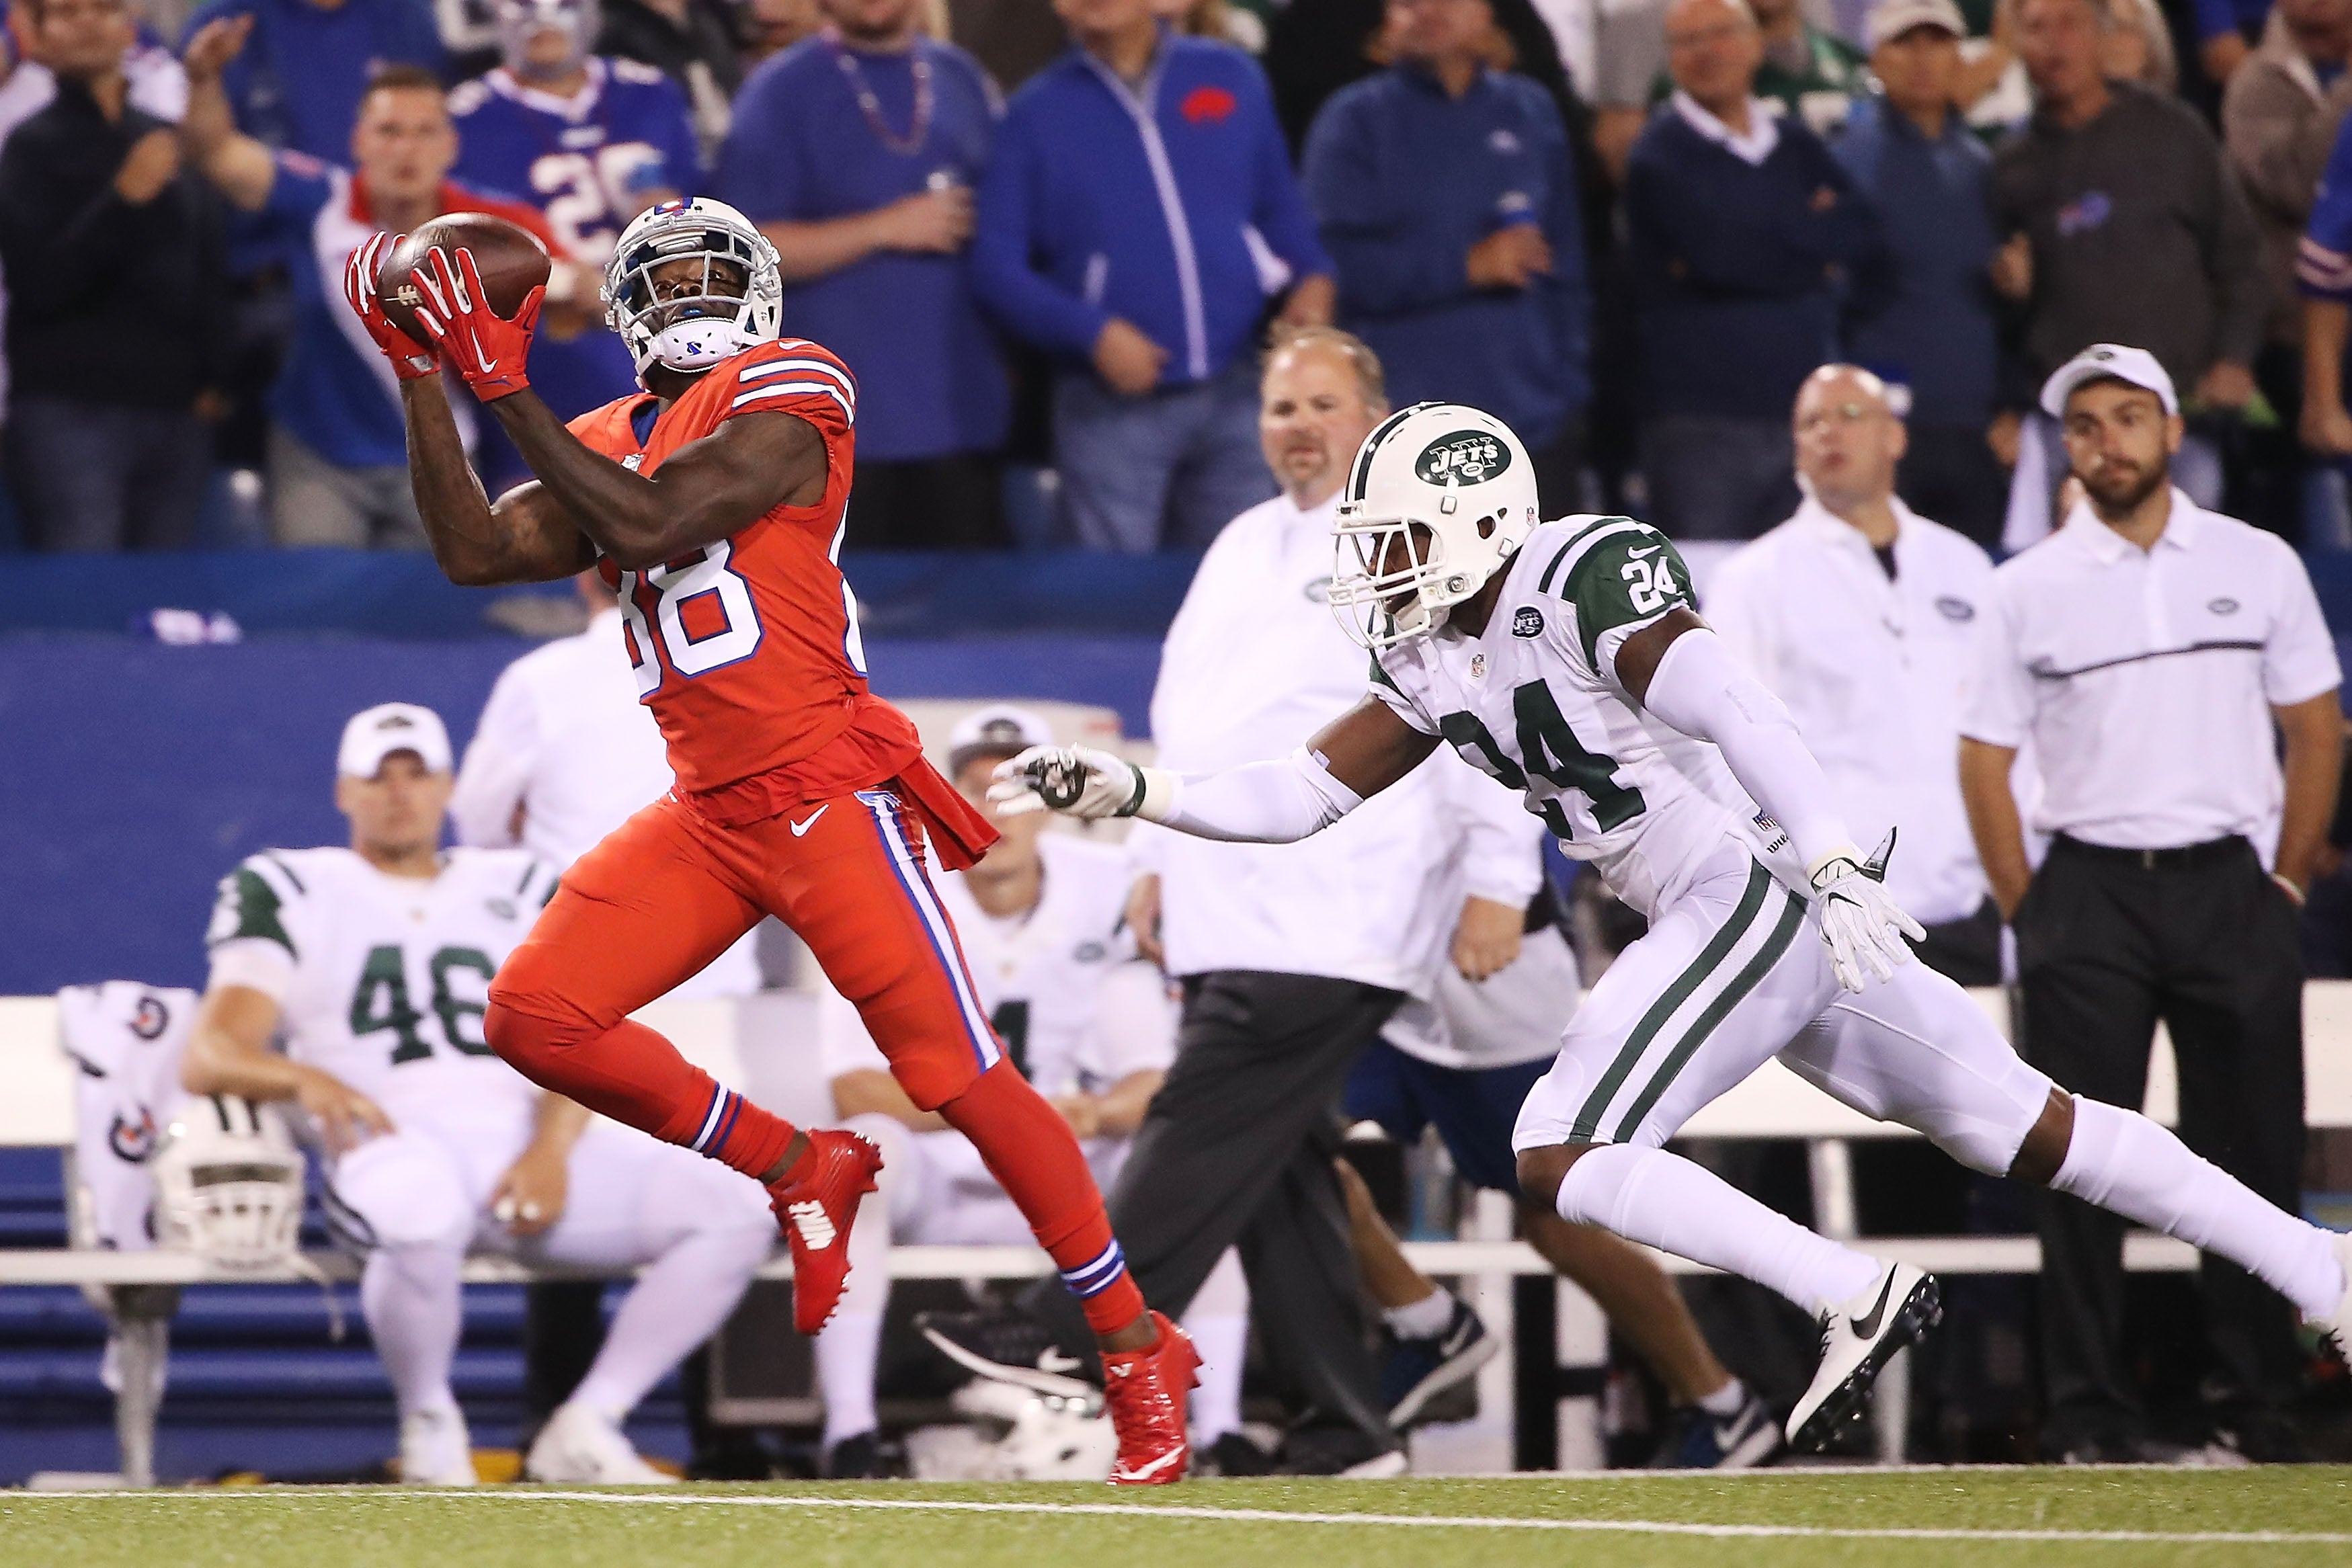 ORCHARD PARK, NY - SEPTEMBER 15: Marquise Goodwin #88 of the Buffalo Bills catches a touchdown pass from Tyrod Taylor #5 of the Buffalo Bills during the first half against the New York Jets at New Era Field on September 15, 2016 in Orchard Park, New York. (Photo by Tom Szczerbowski/Getty Images)